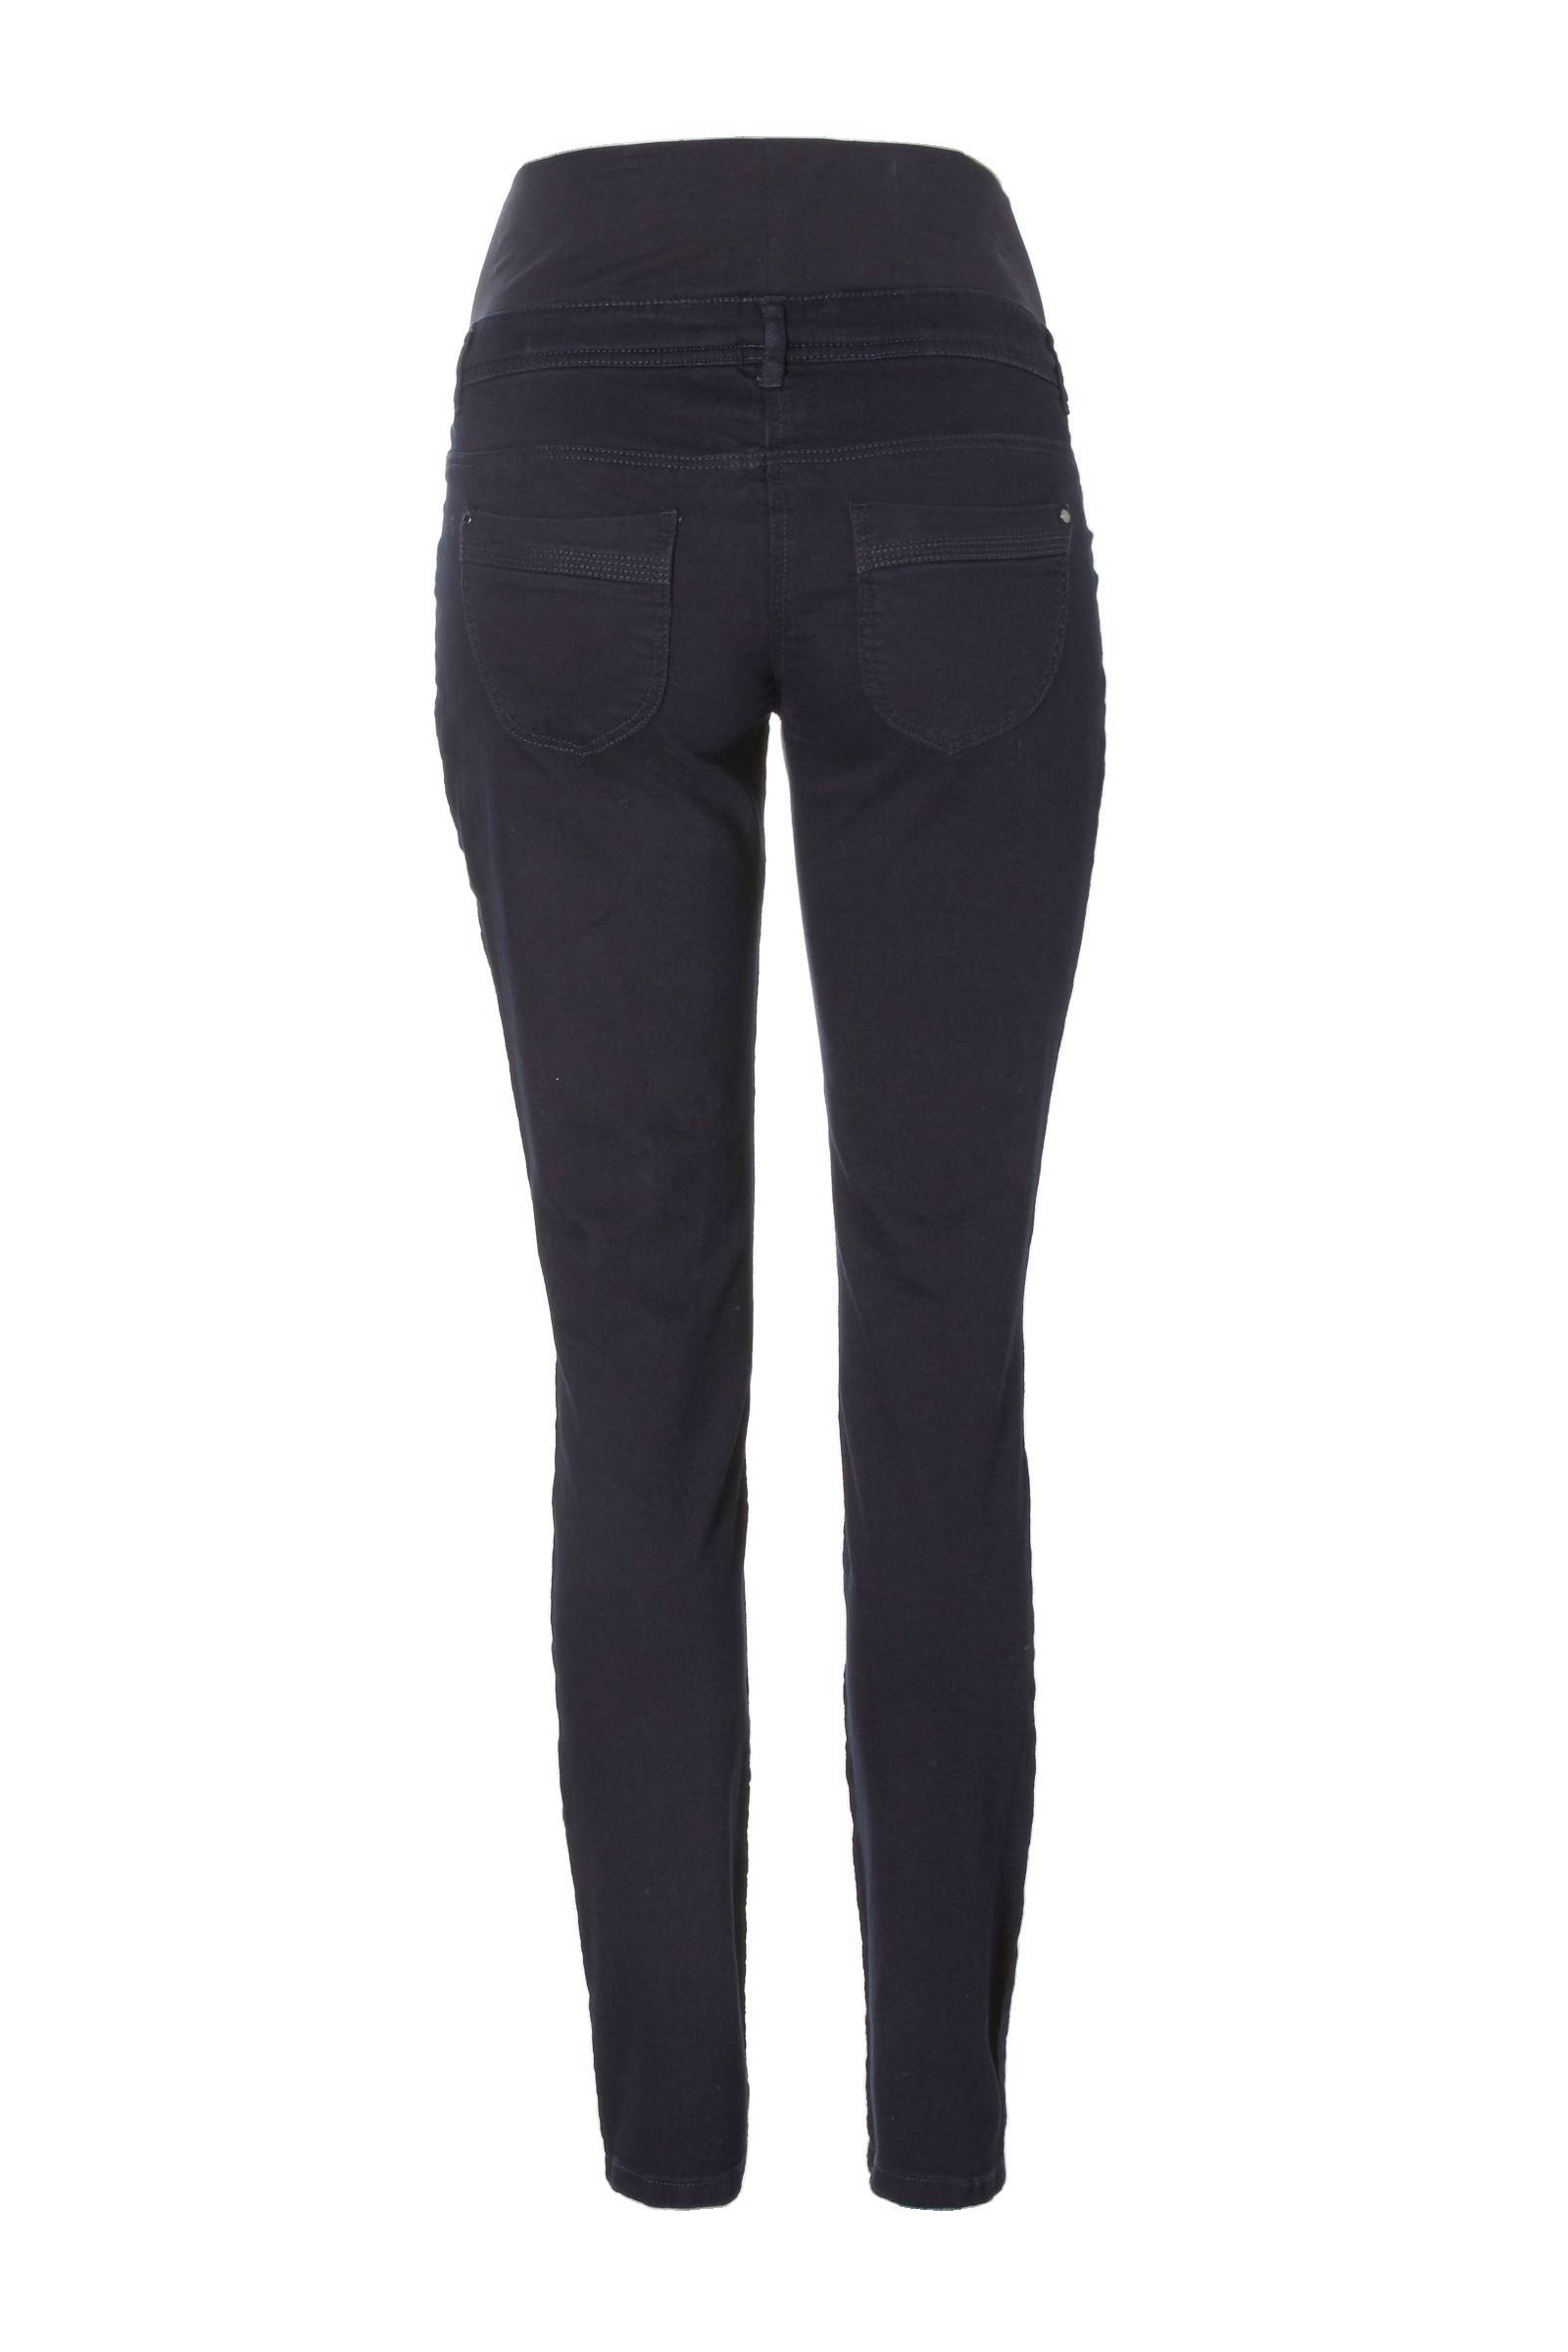 A Positiemode A C C jegging jegging Positiemode z7q5ff